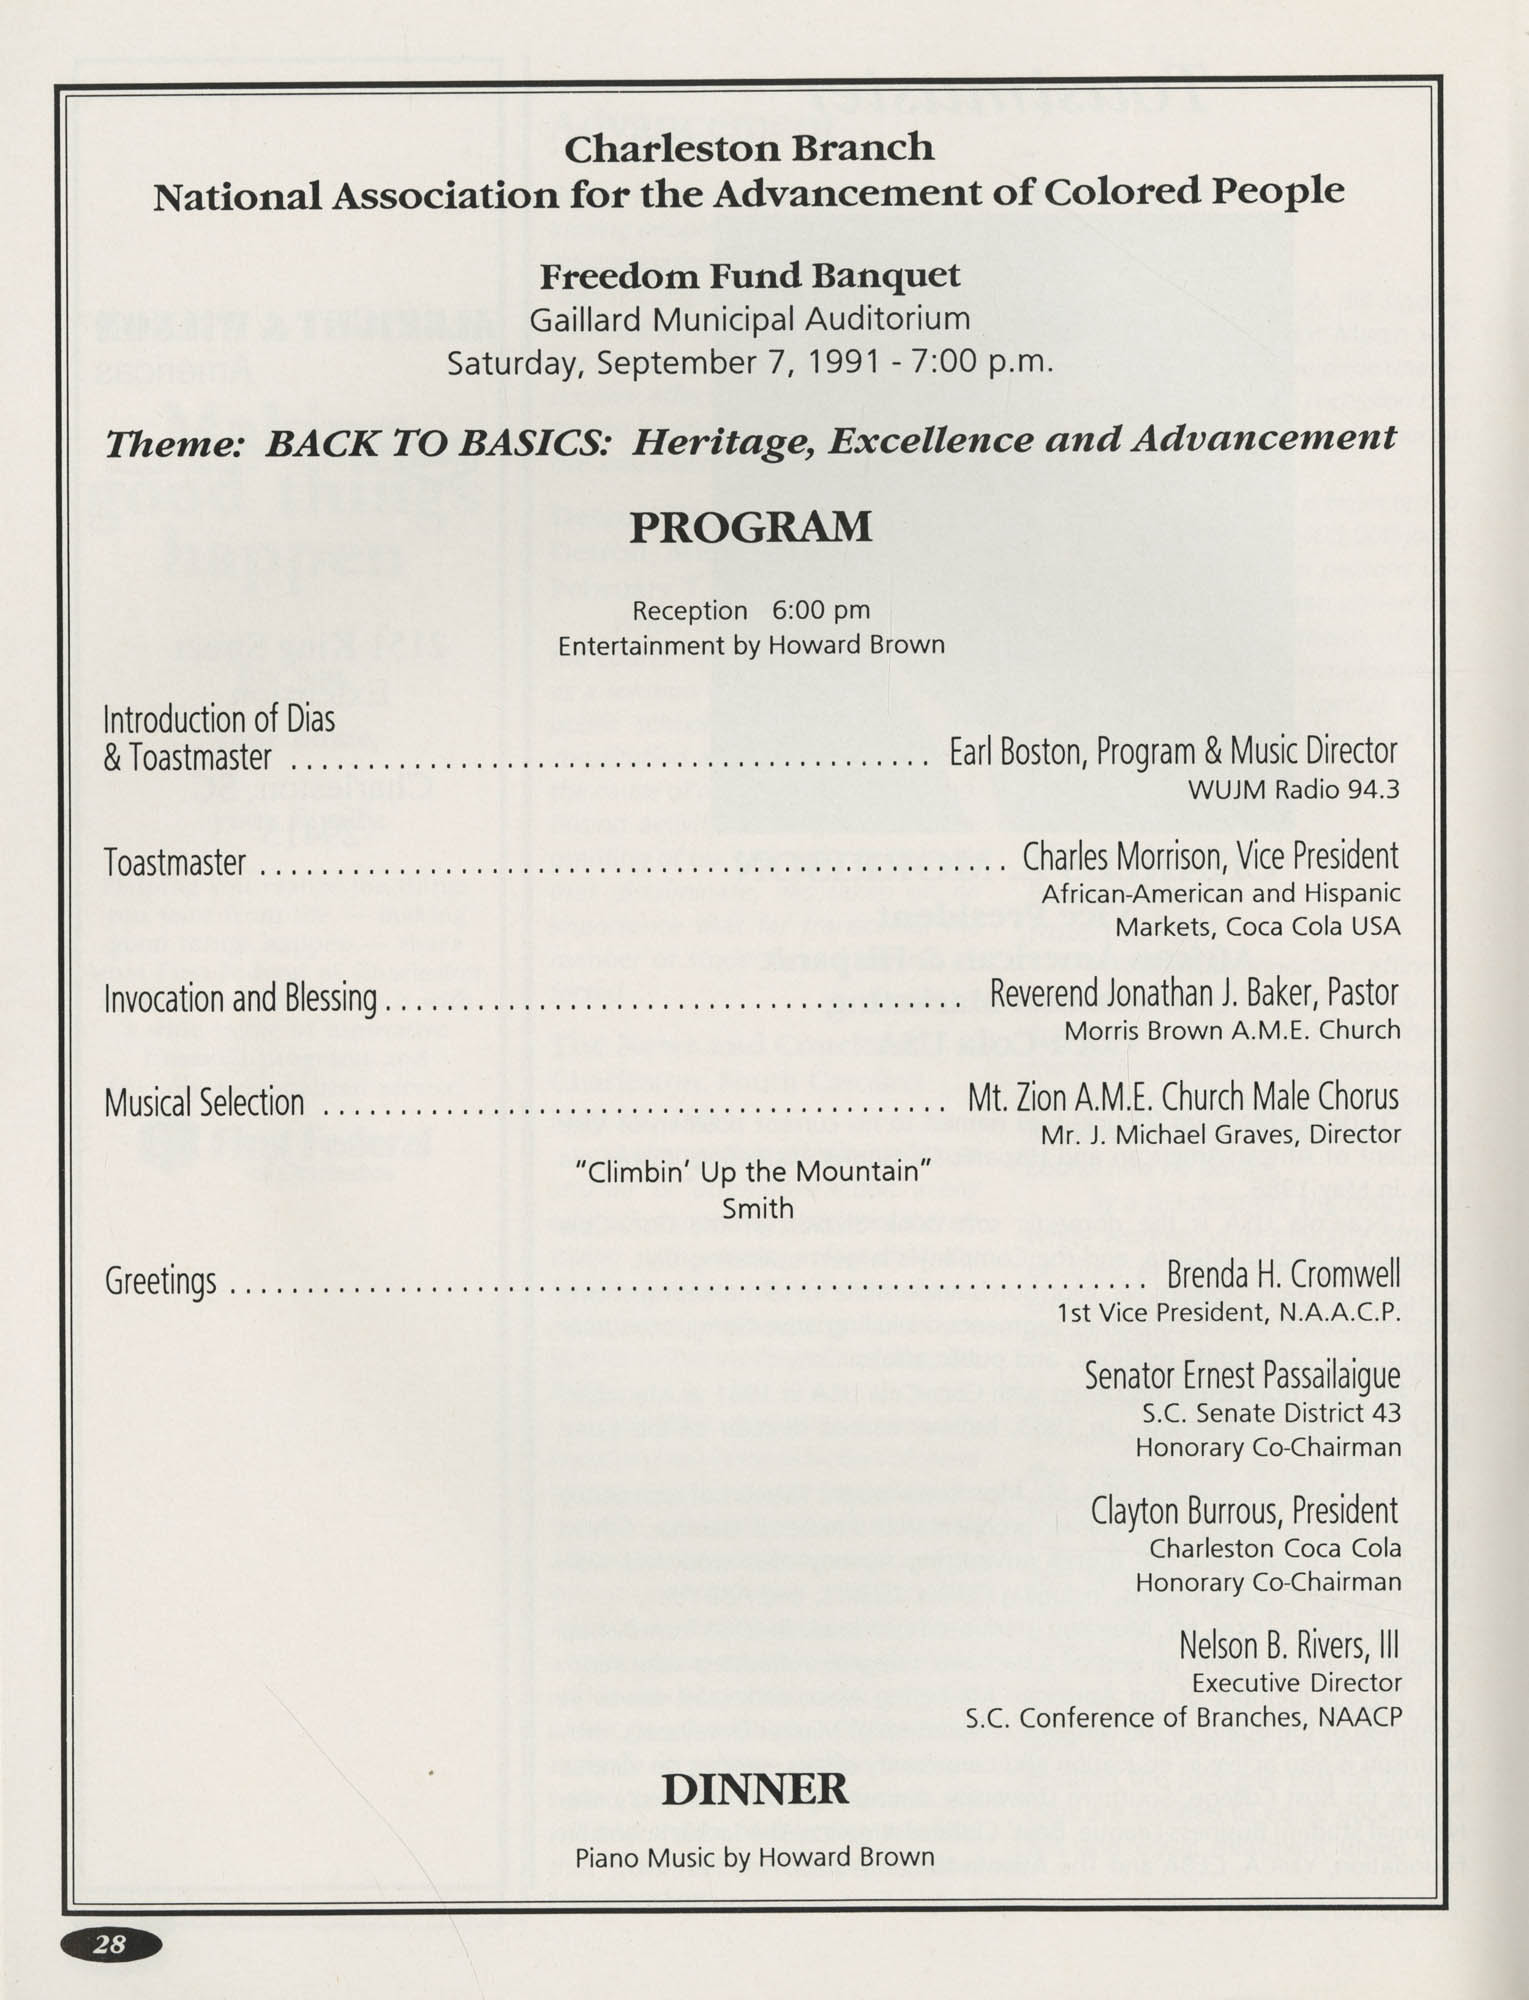 1991 Freedom Fund Magazine, Charleston Branch of the NAACP, Page 28